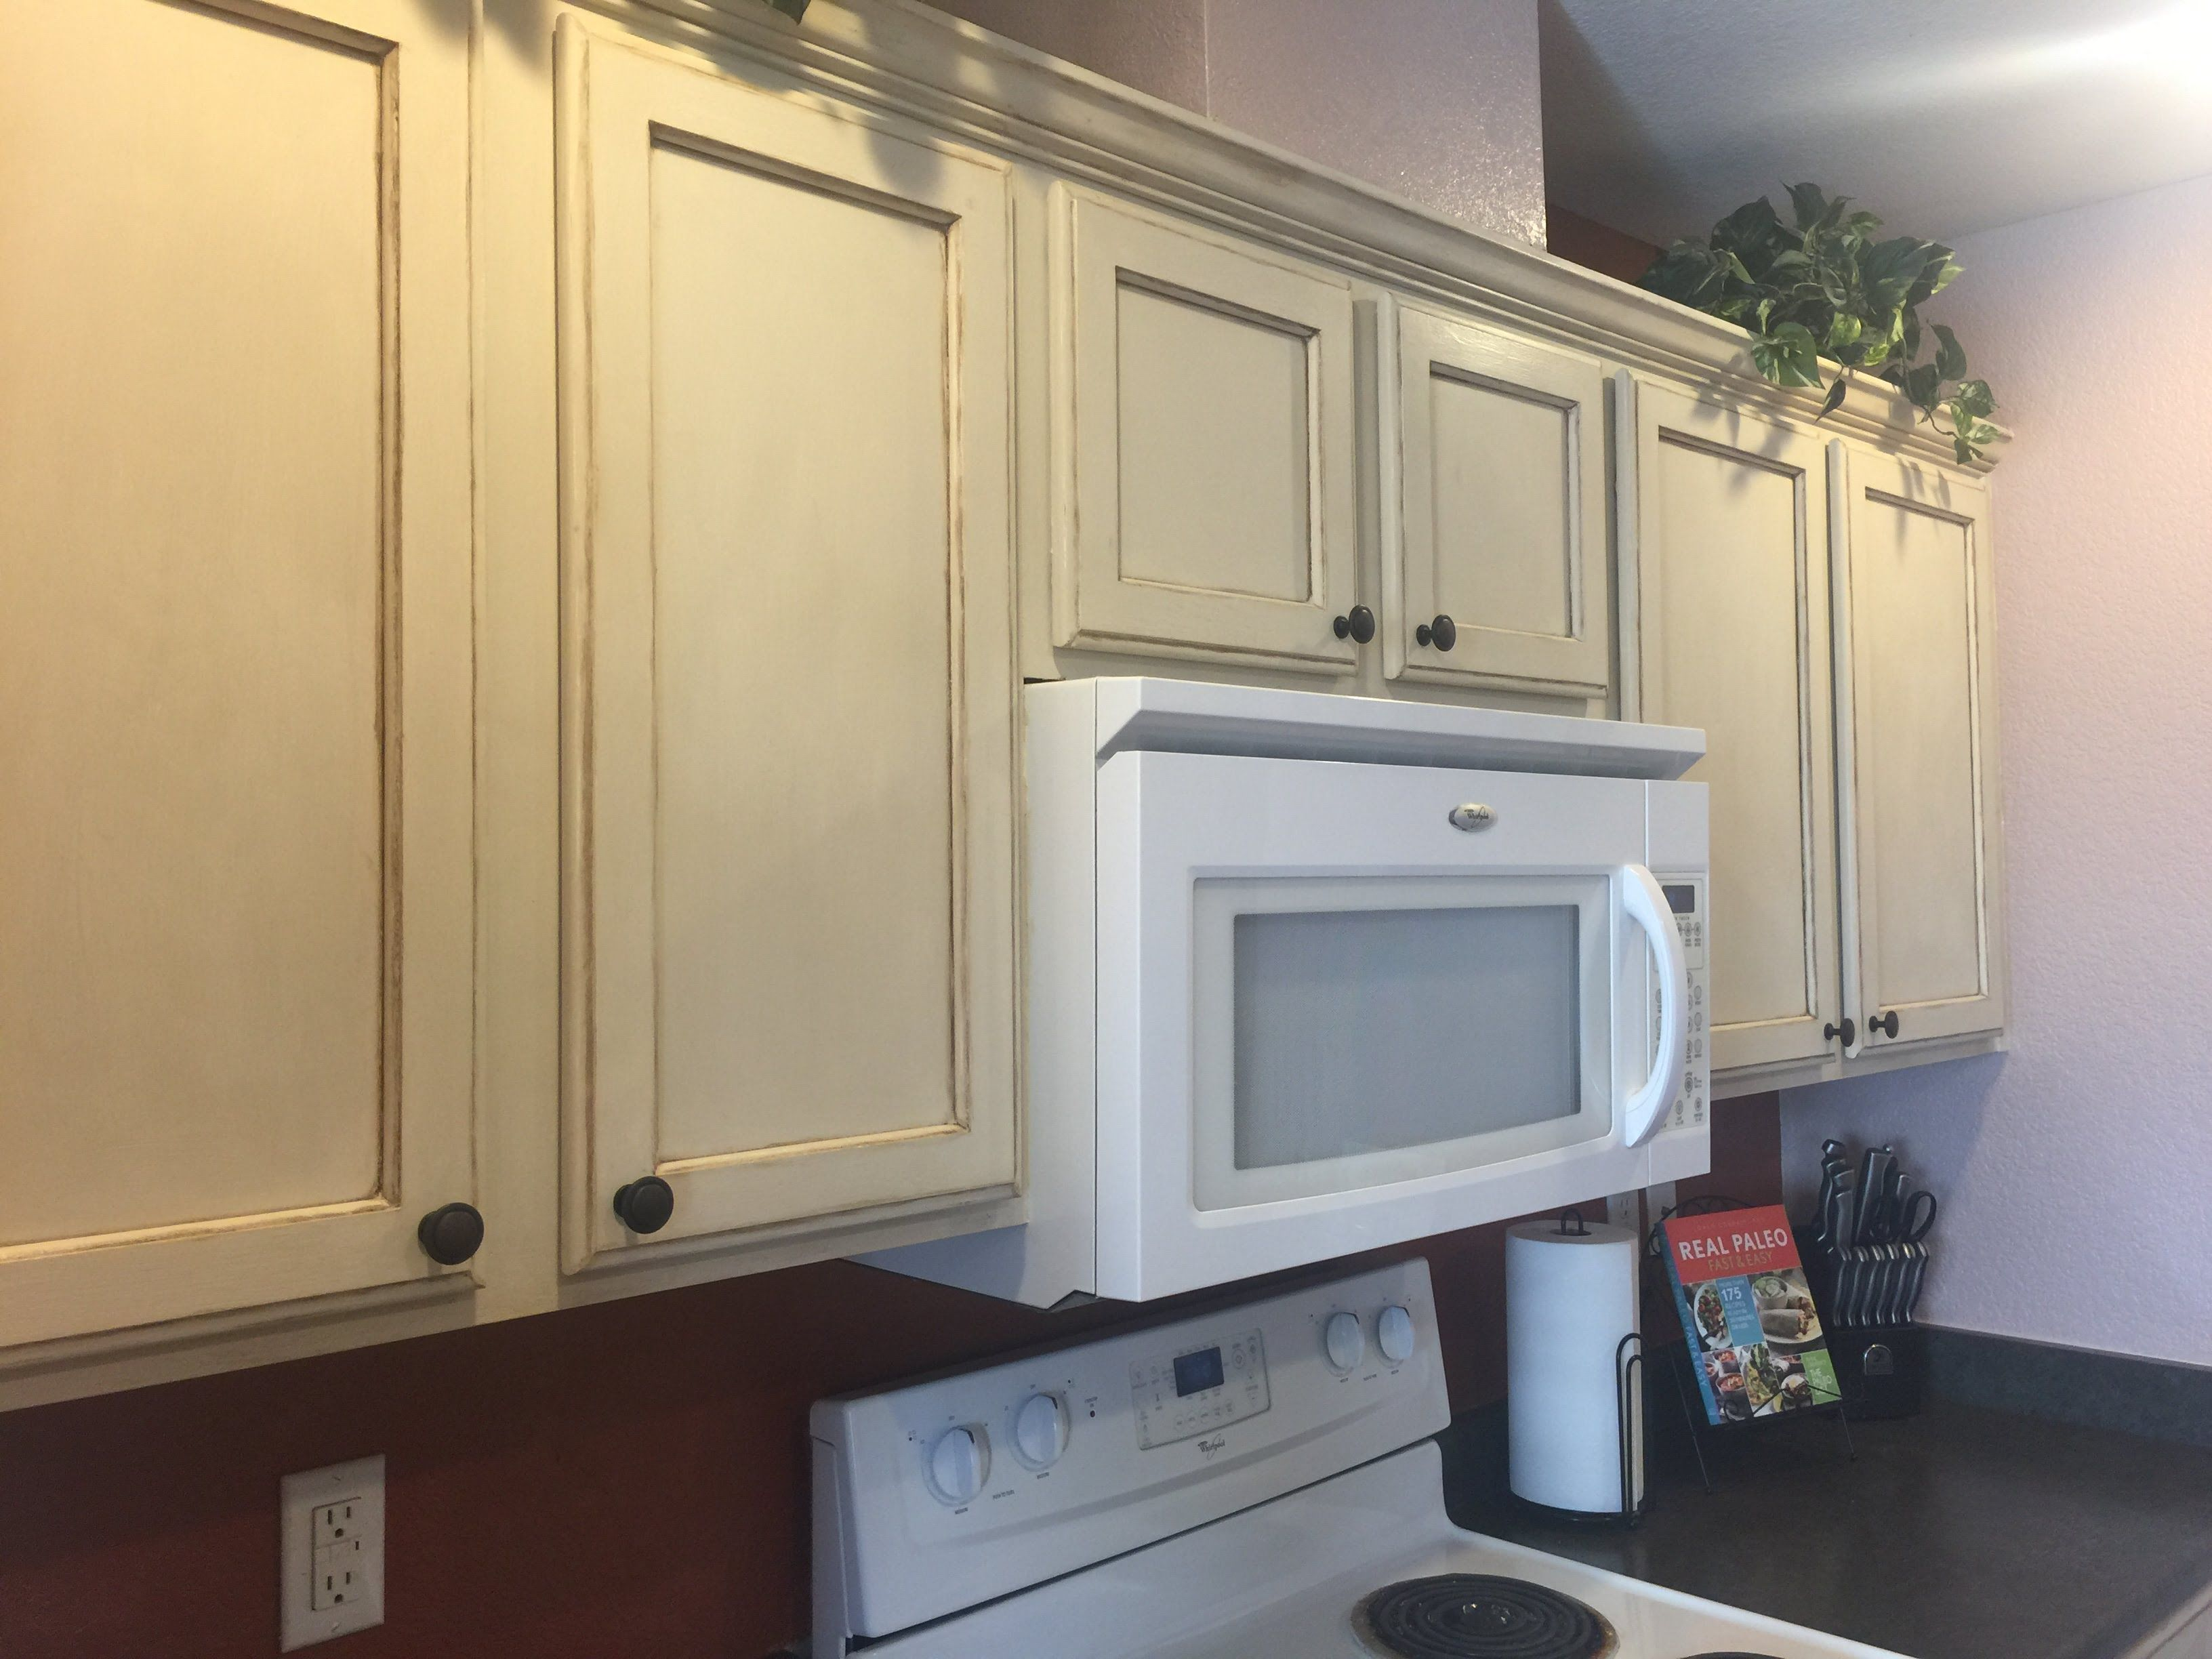 Diy Kitchen Cabinet Remodel With Annie Sloan Chalk Paint Youtube Kitchen Cabinets Makeover Kitchen Cabinets Before And After Kitchen Cabinet Remodel